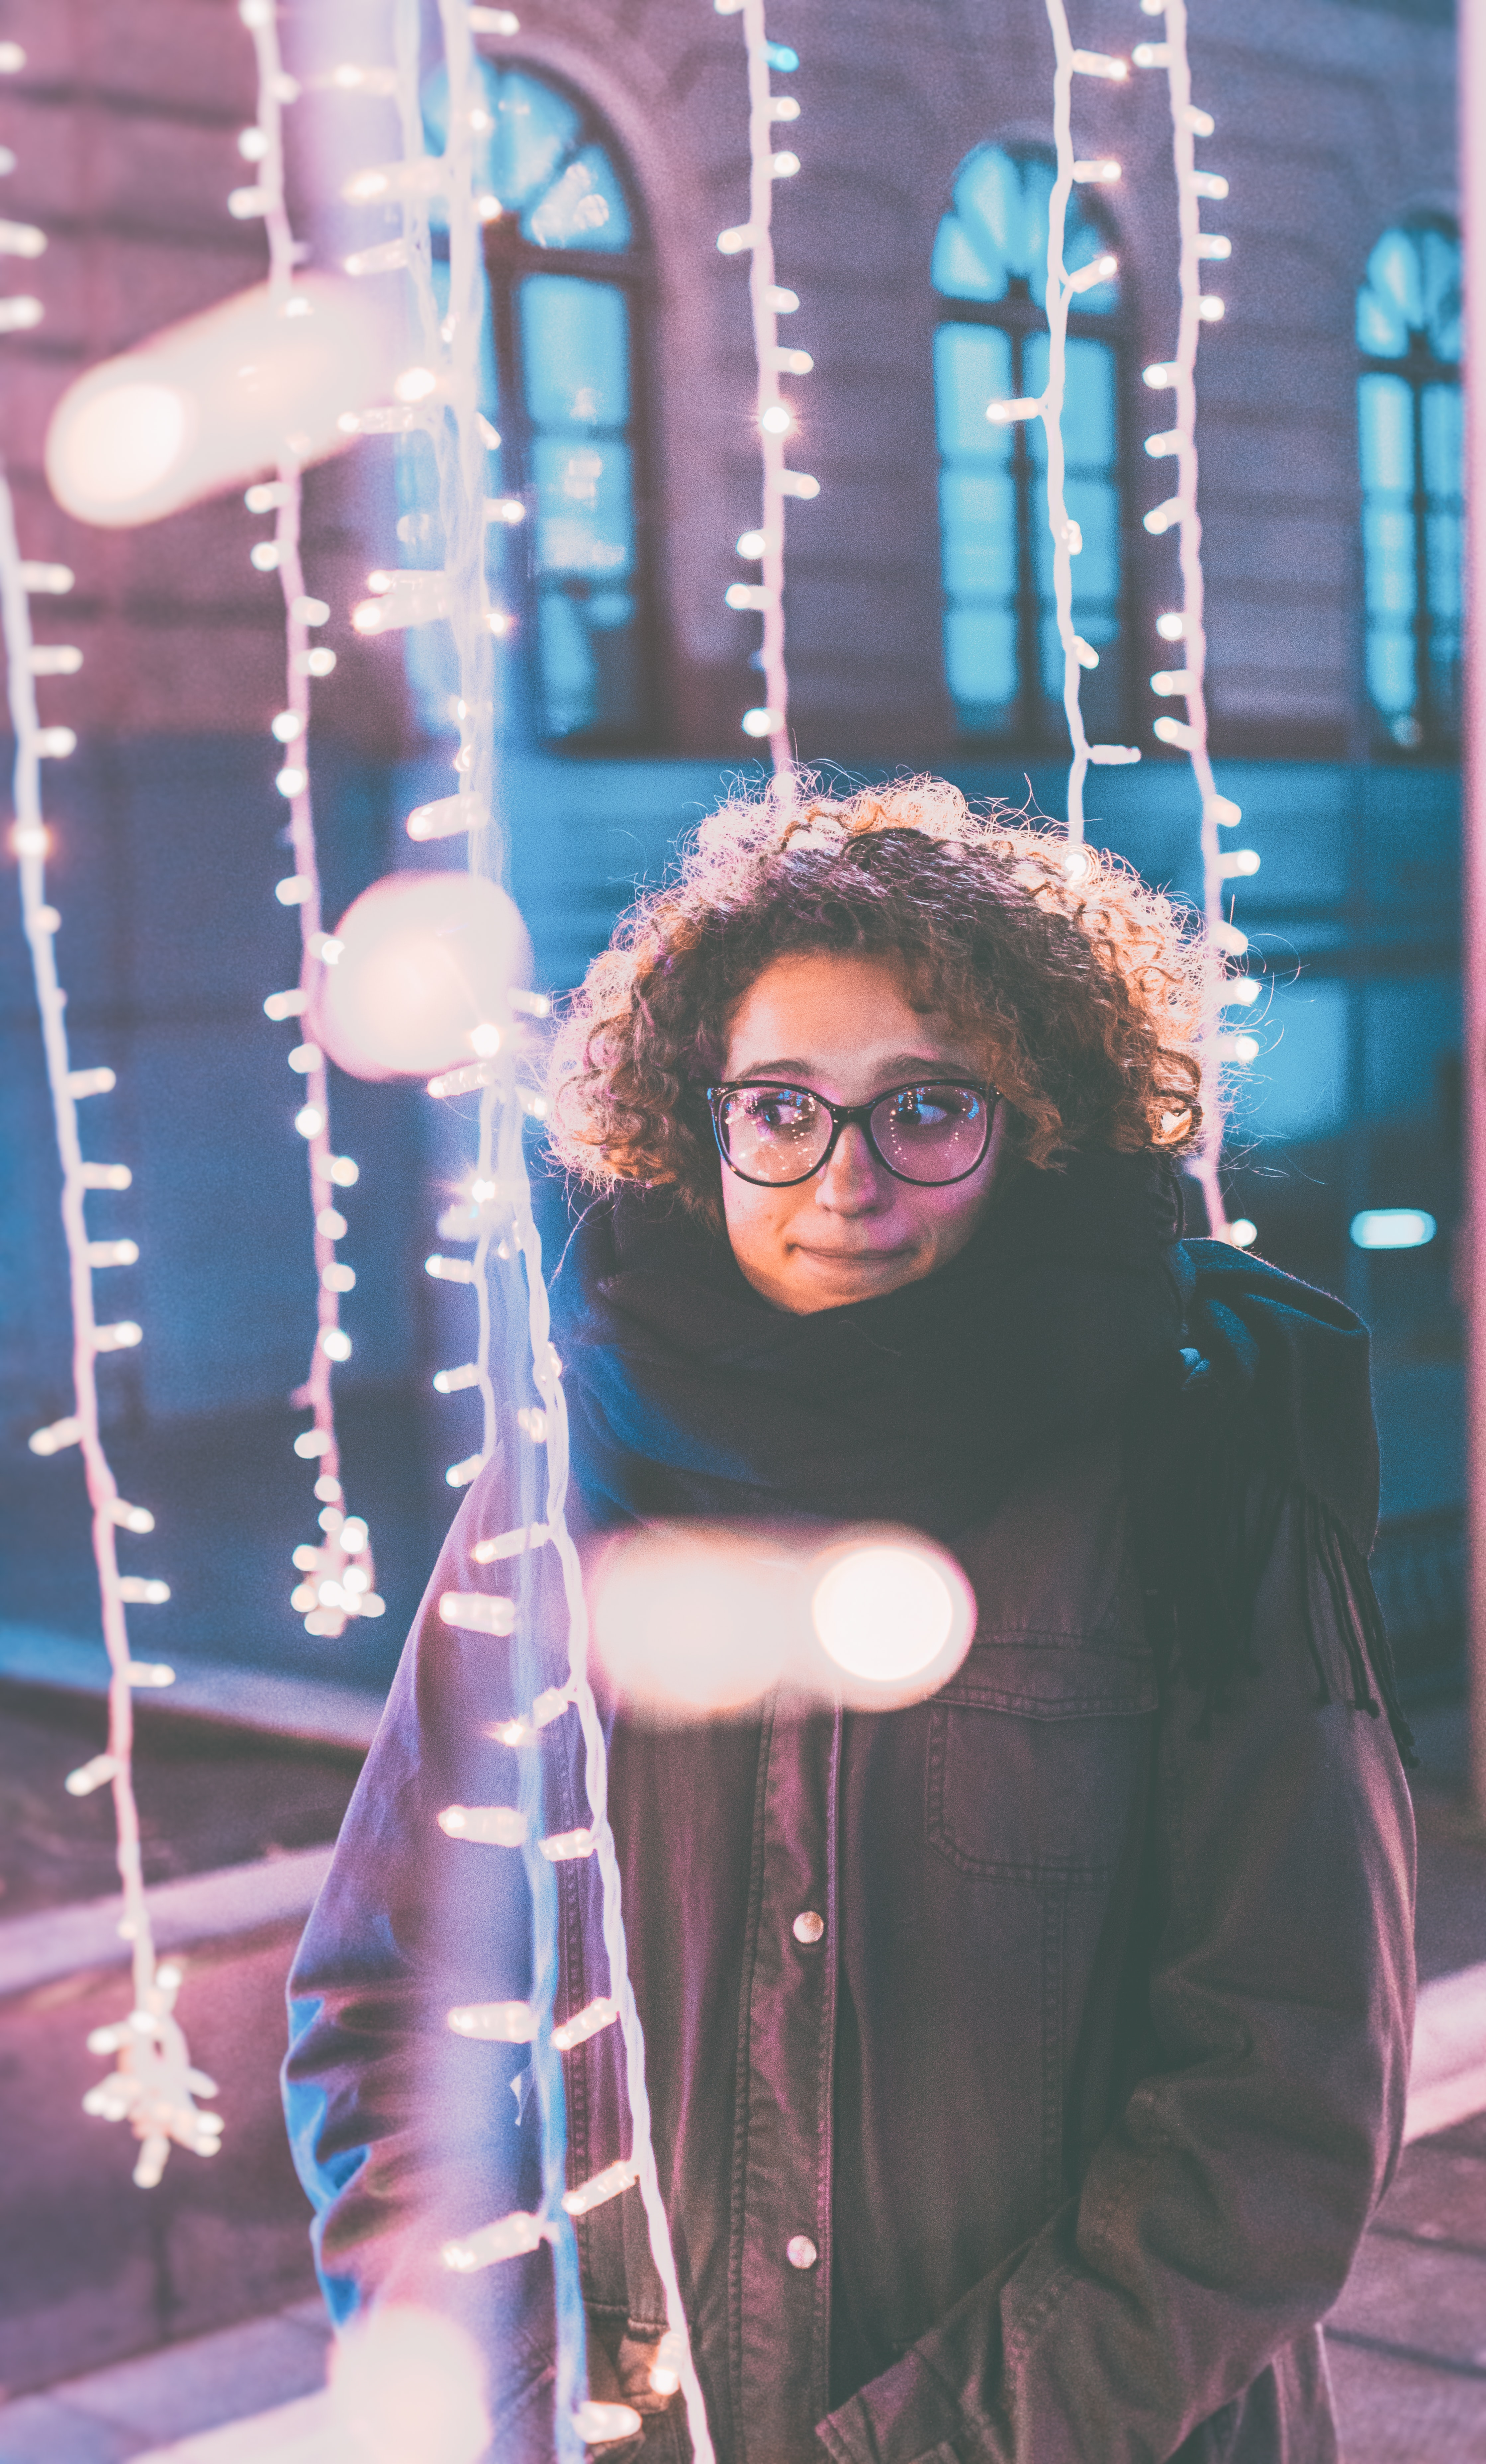 woman standing under lighted string lights